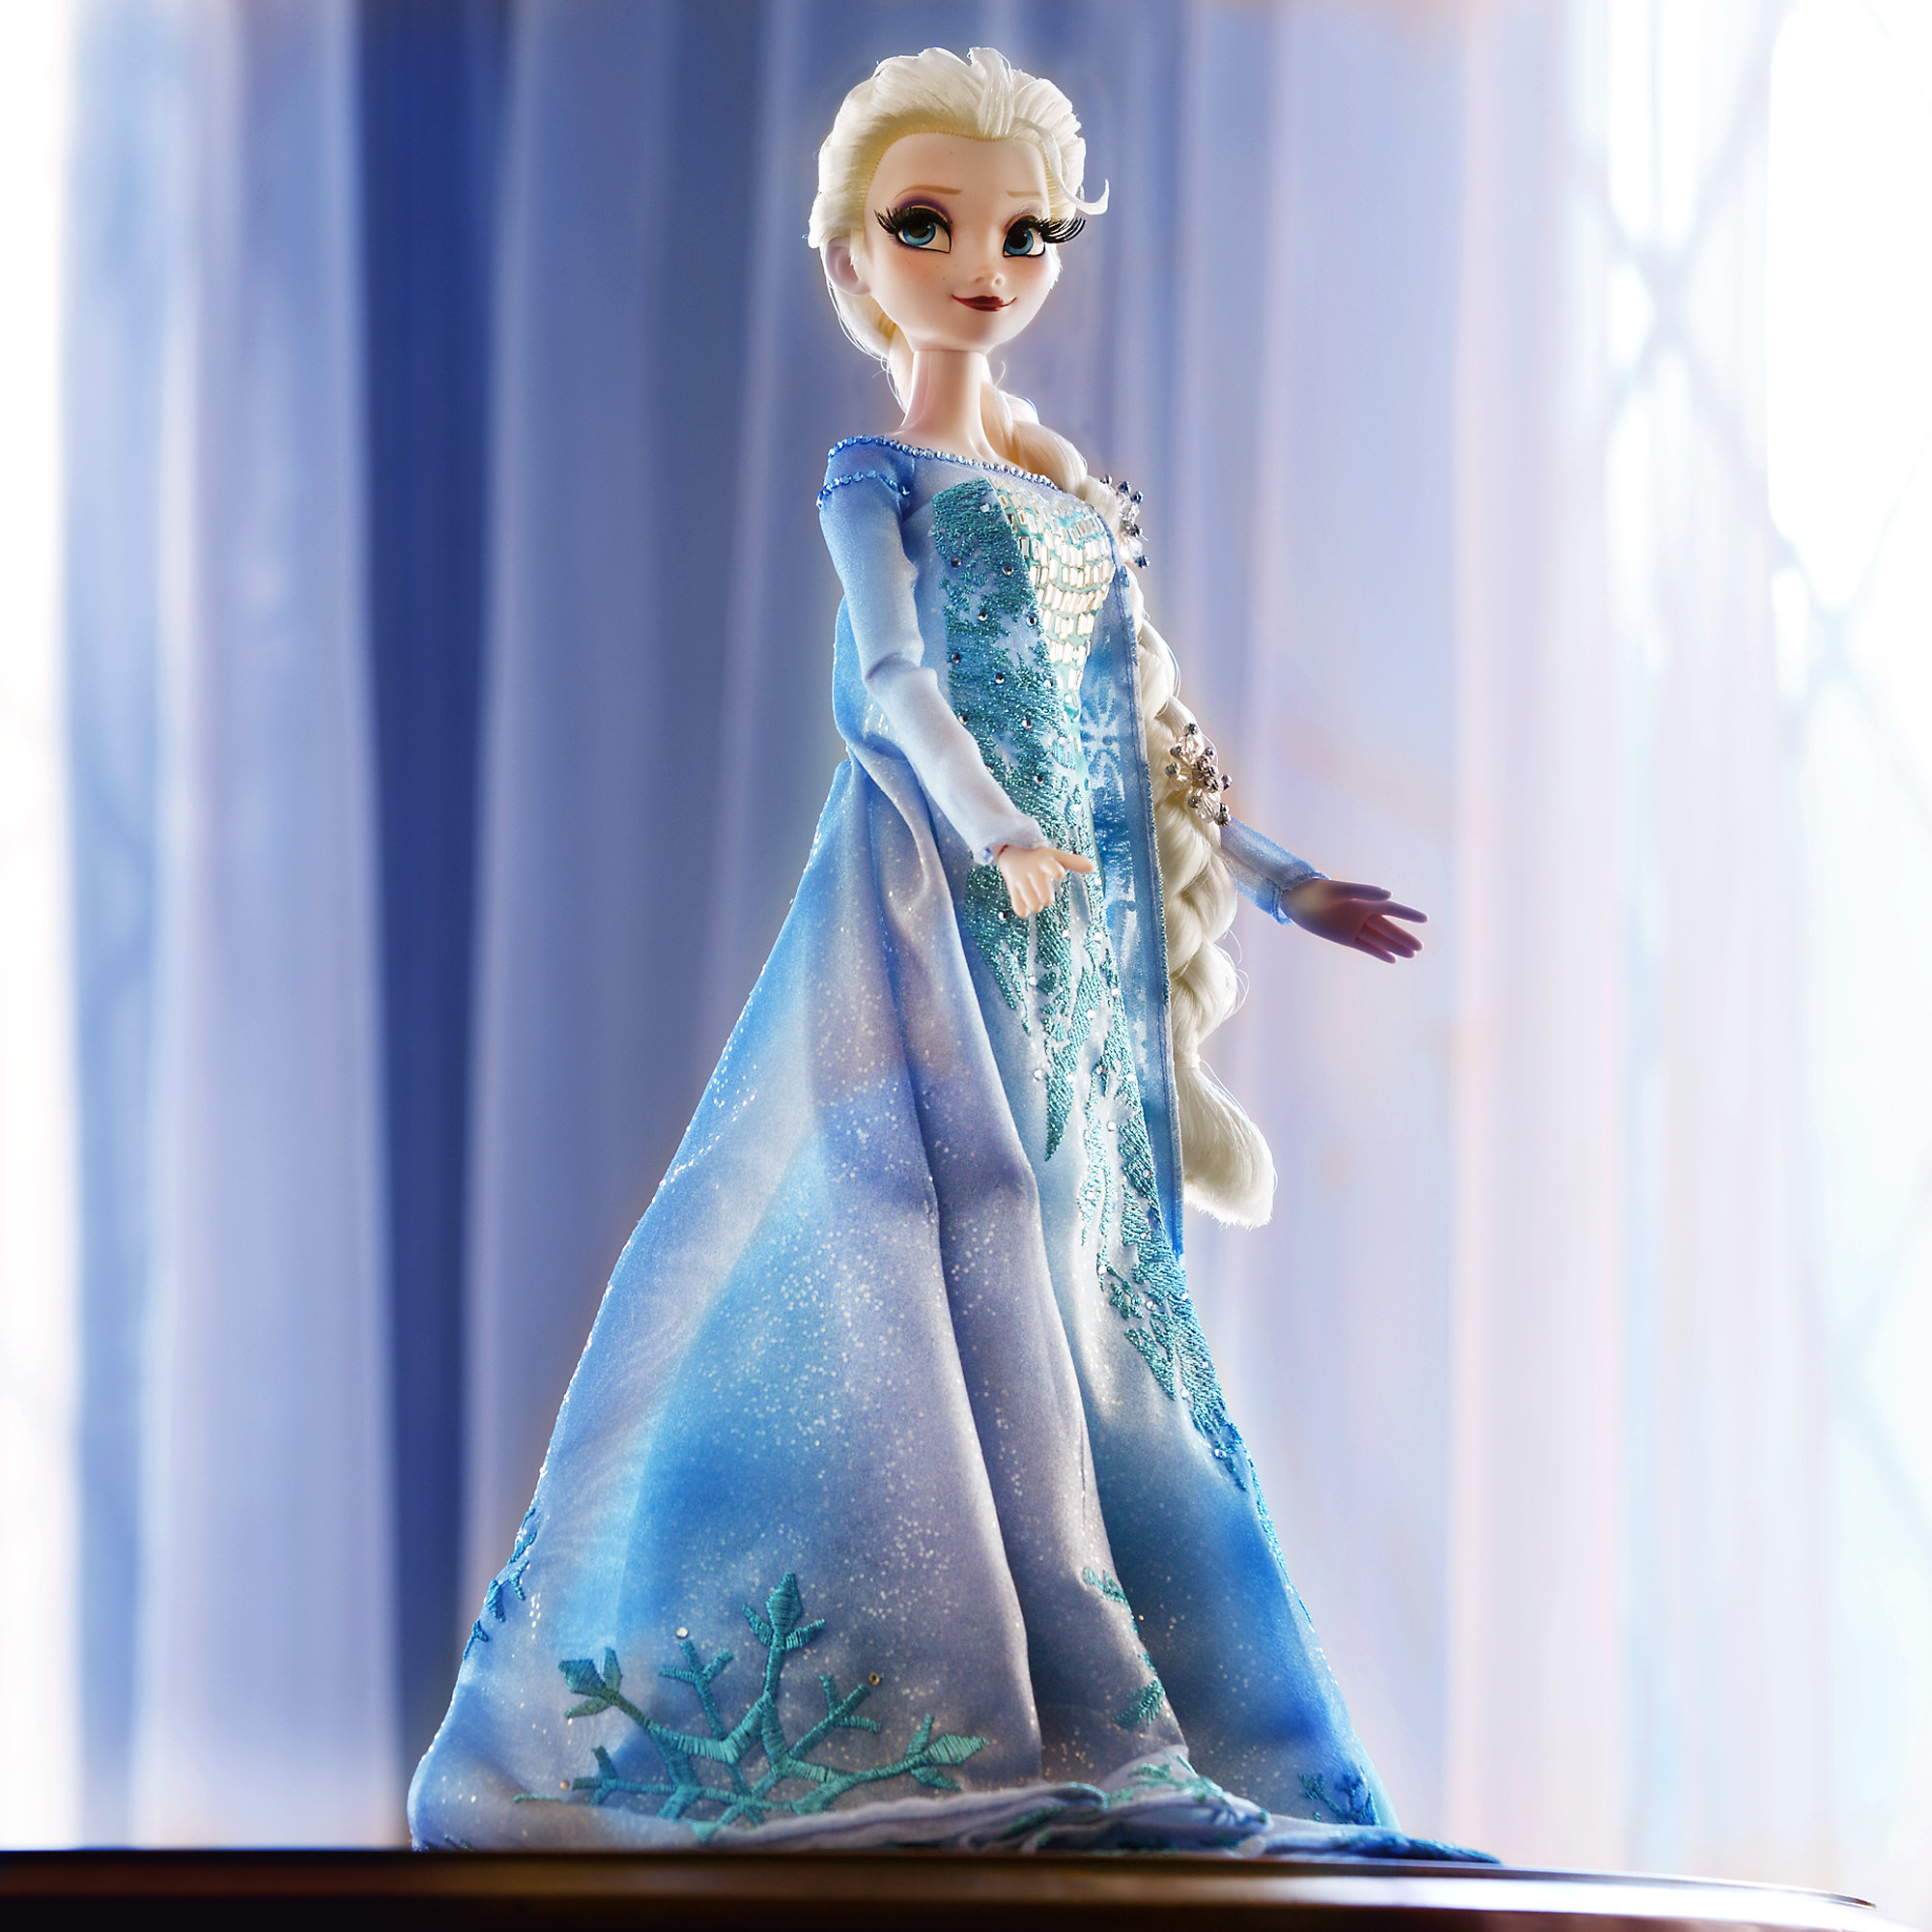 Elsa Disney Store Limited Edition doll - Frozen Photo